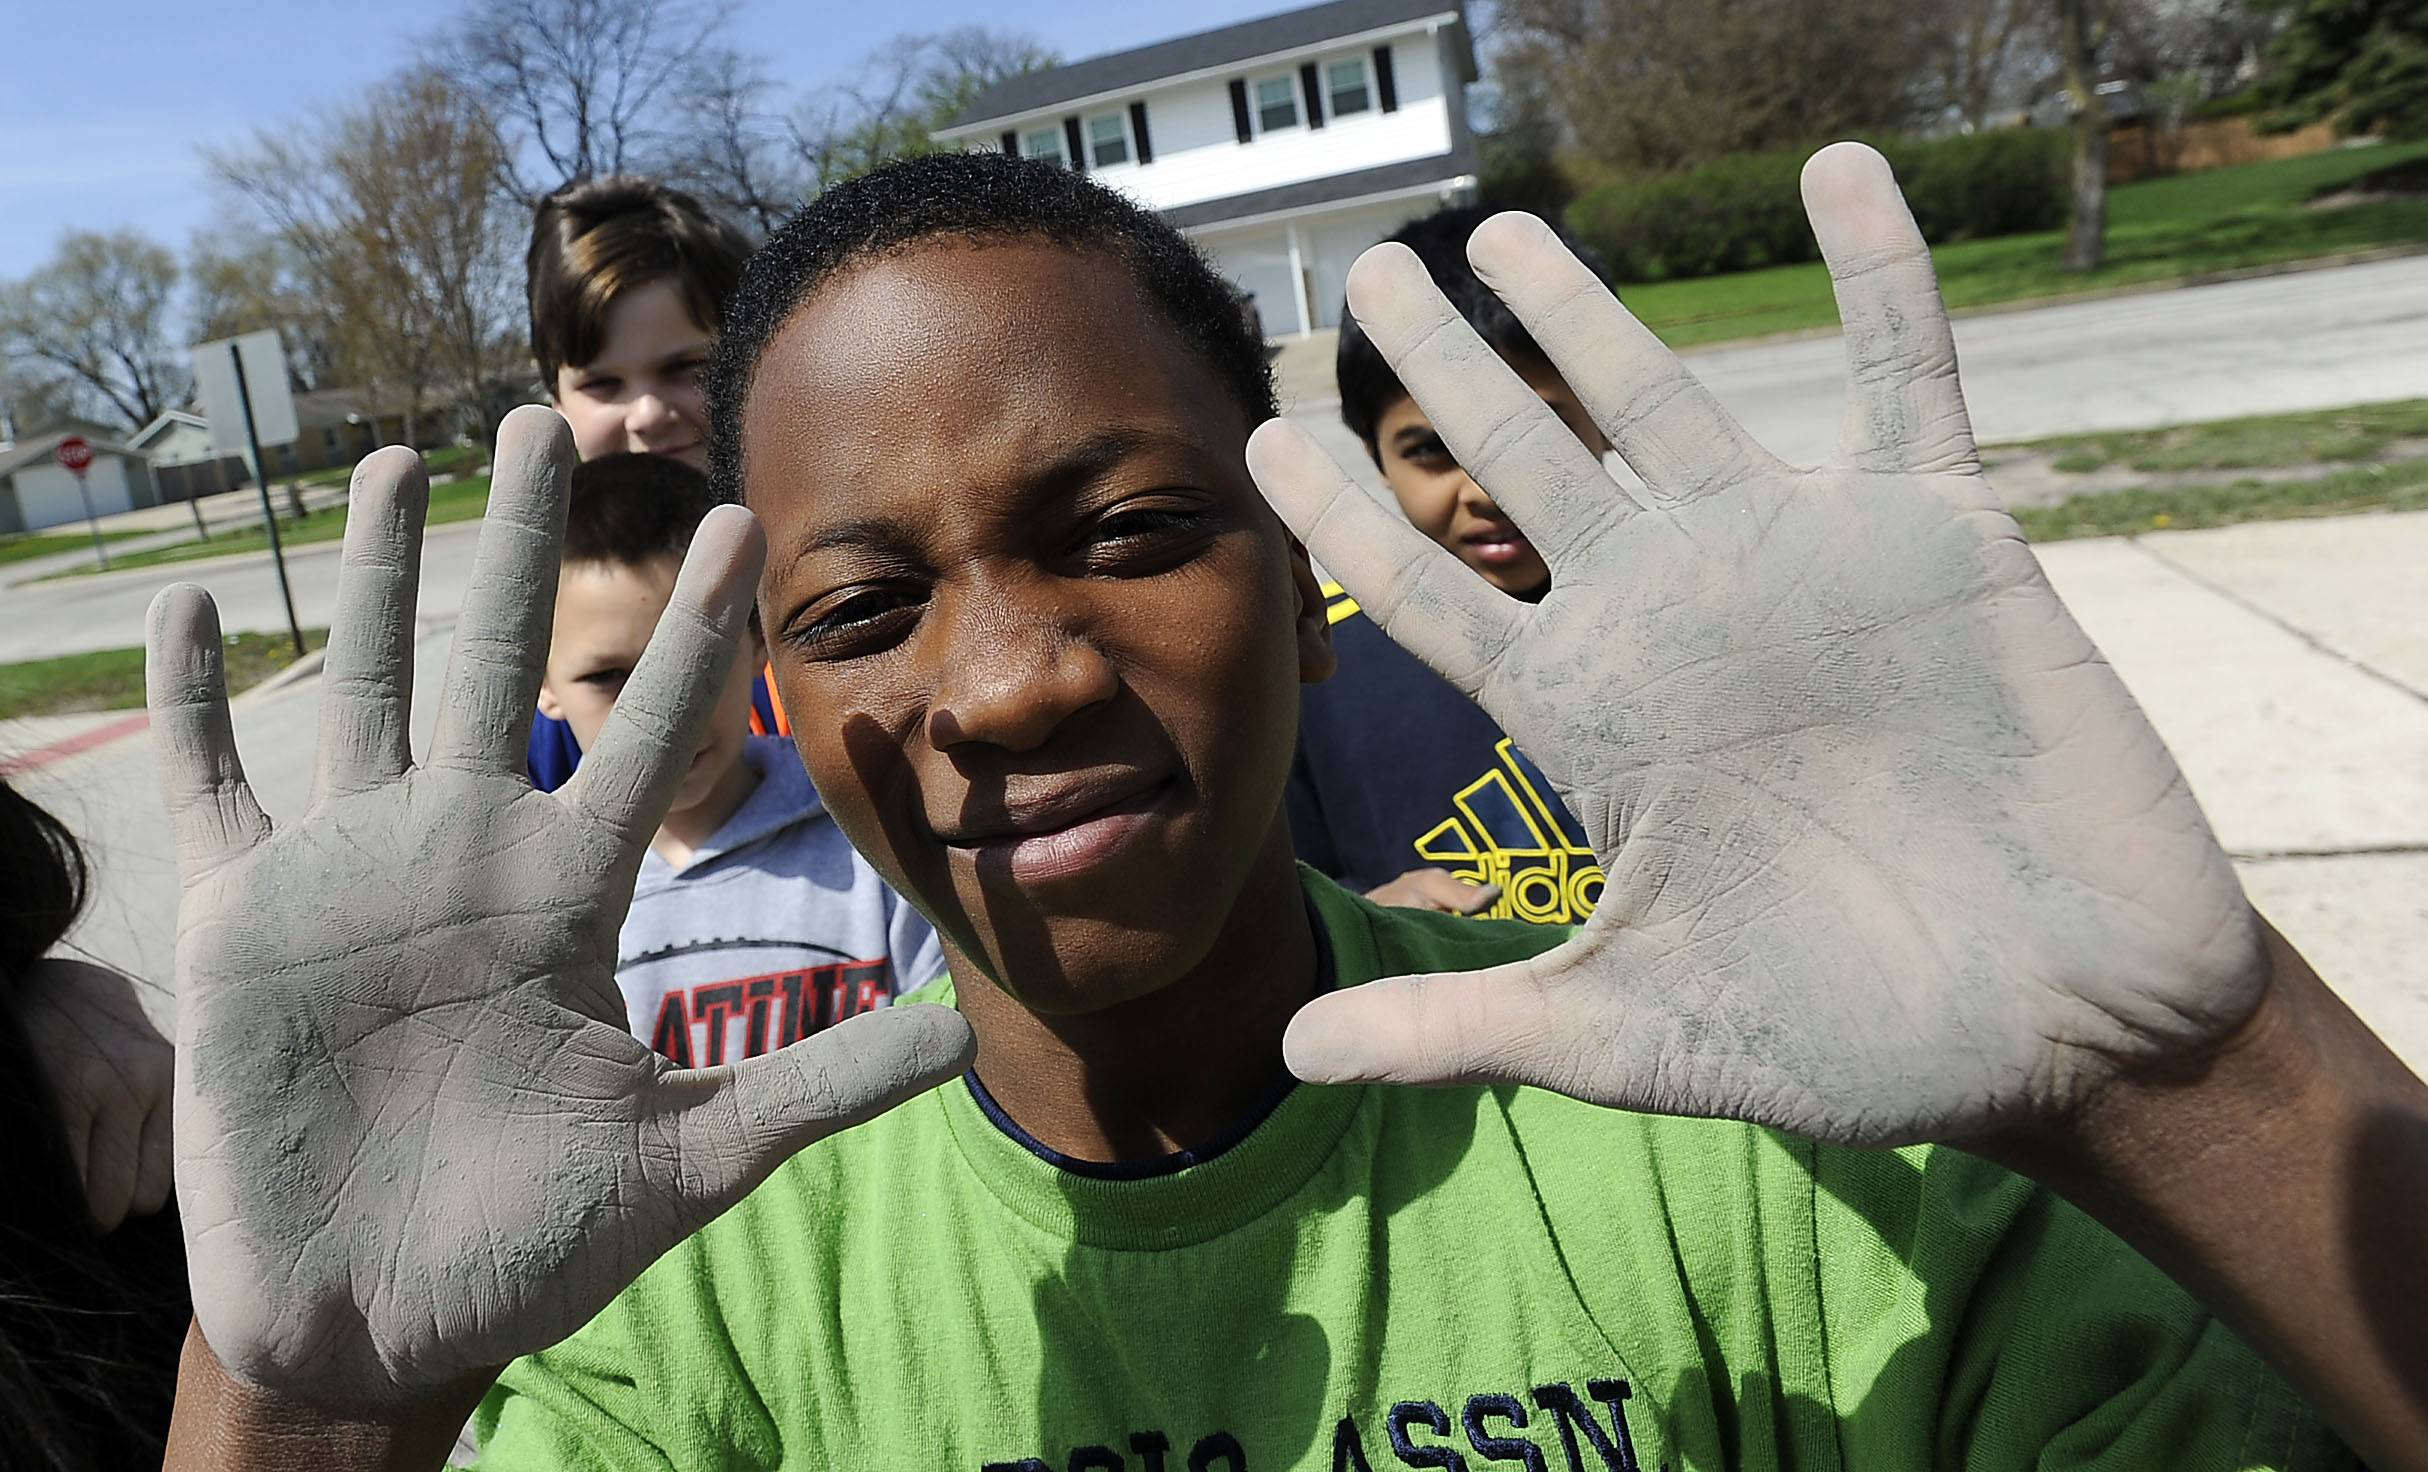 Avion Walker, 12, shows off his dirty hands Tuesday after working on the mural being created on the side of Jane Addams Elementary School in Palatine.